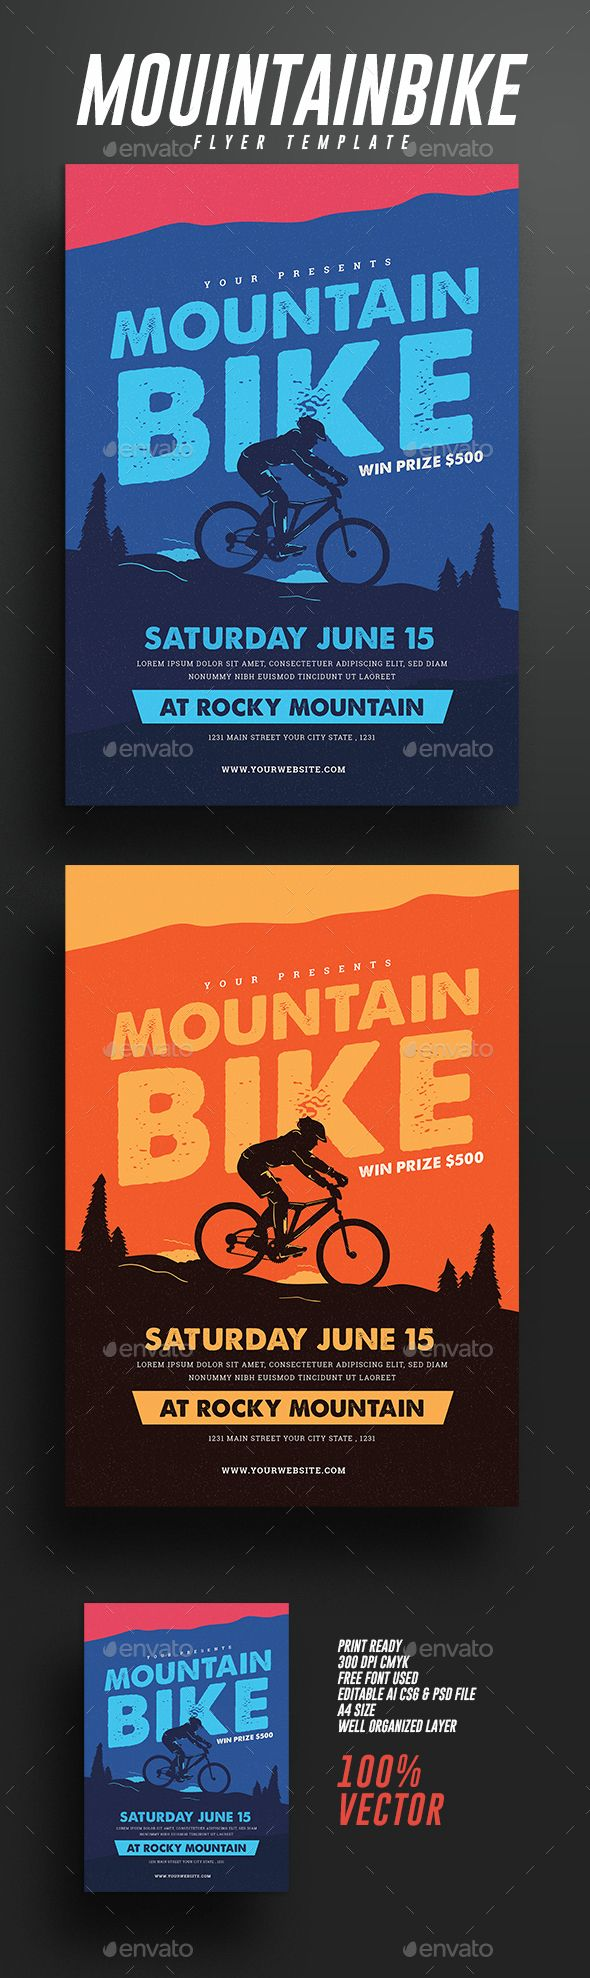 mountain bike event flyer photoshop psd mountain hill download